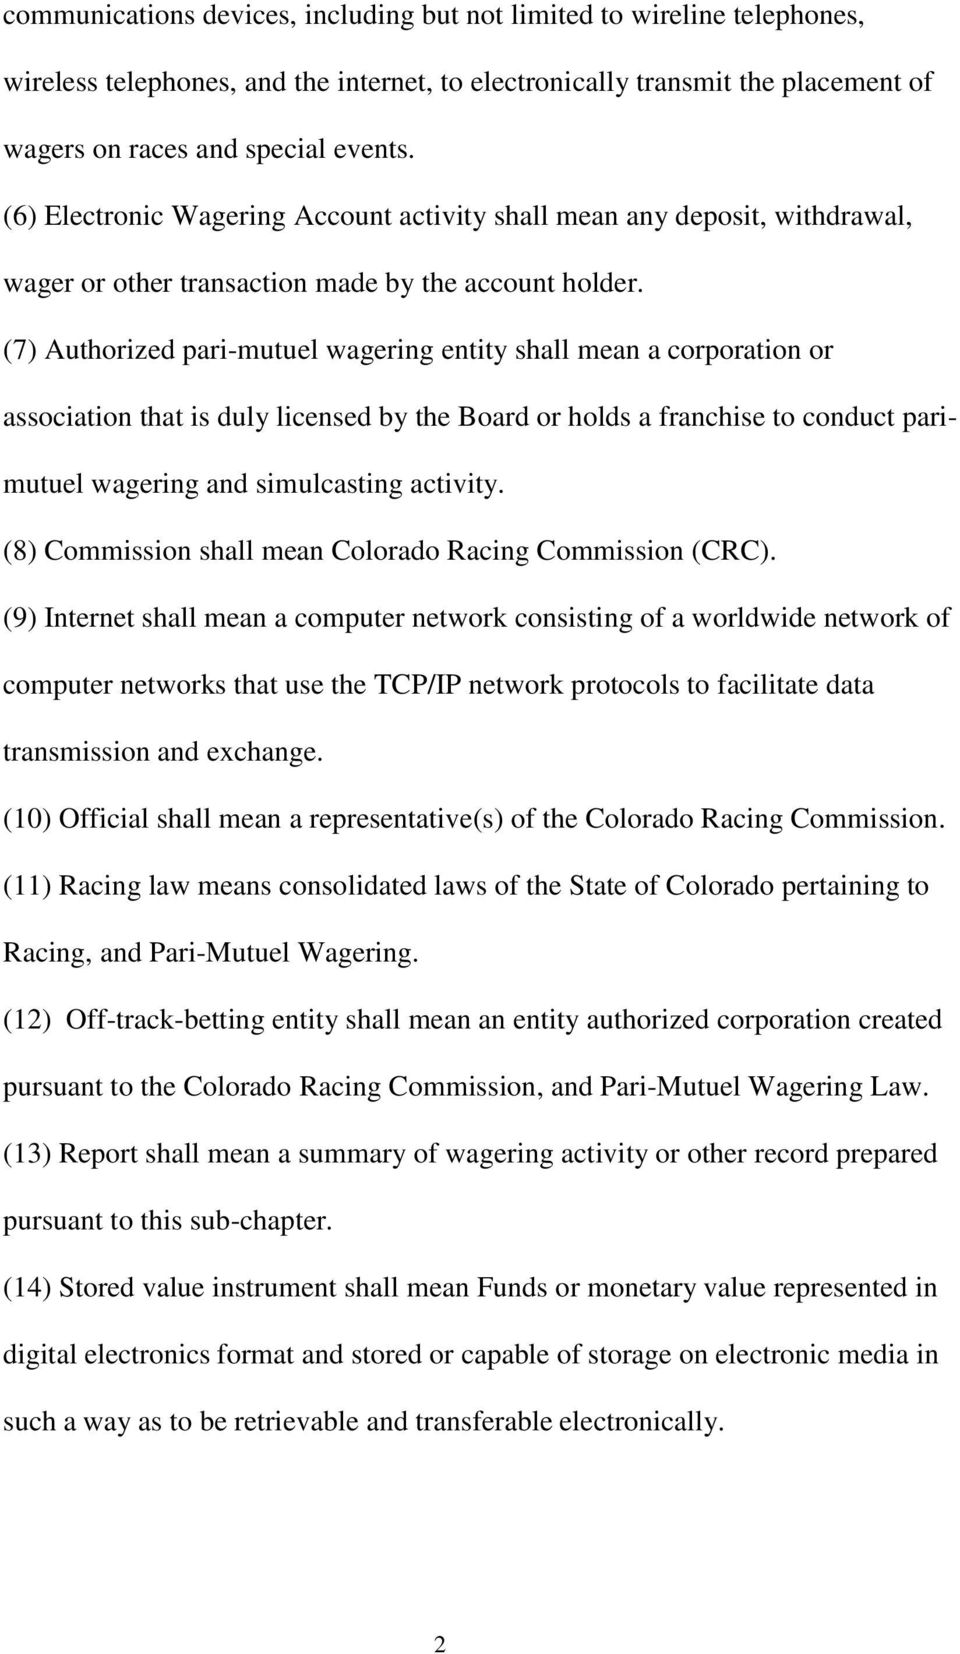 (7) Authorized pari-mutuel wagering entity shall mean a corporation or association that is duly licensed by the Board or holds a franchise to conduct parimutuel wagering and simulcasting activity.